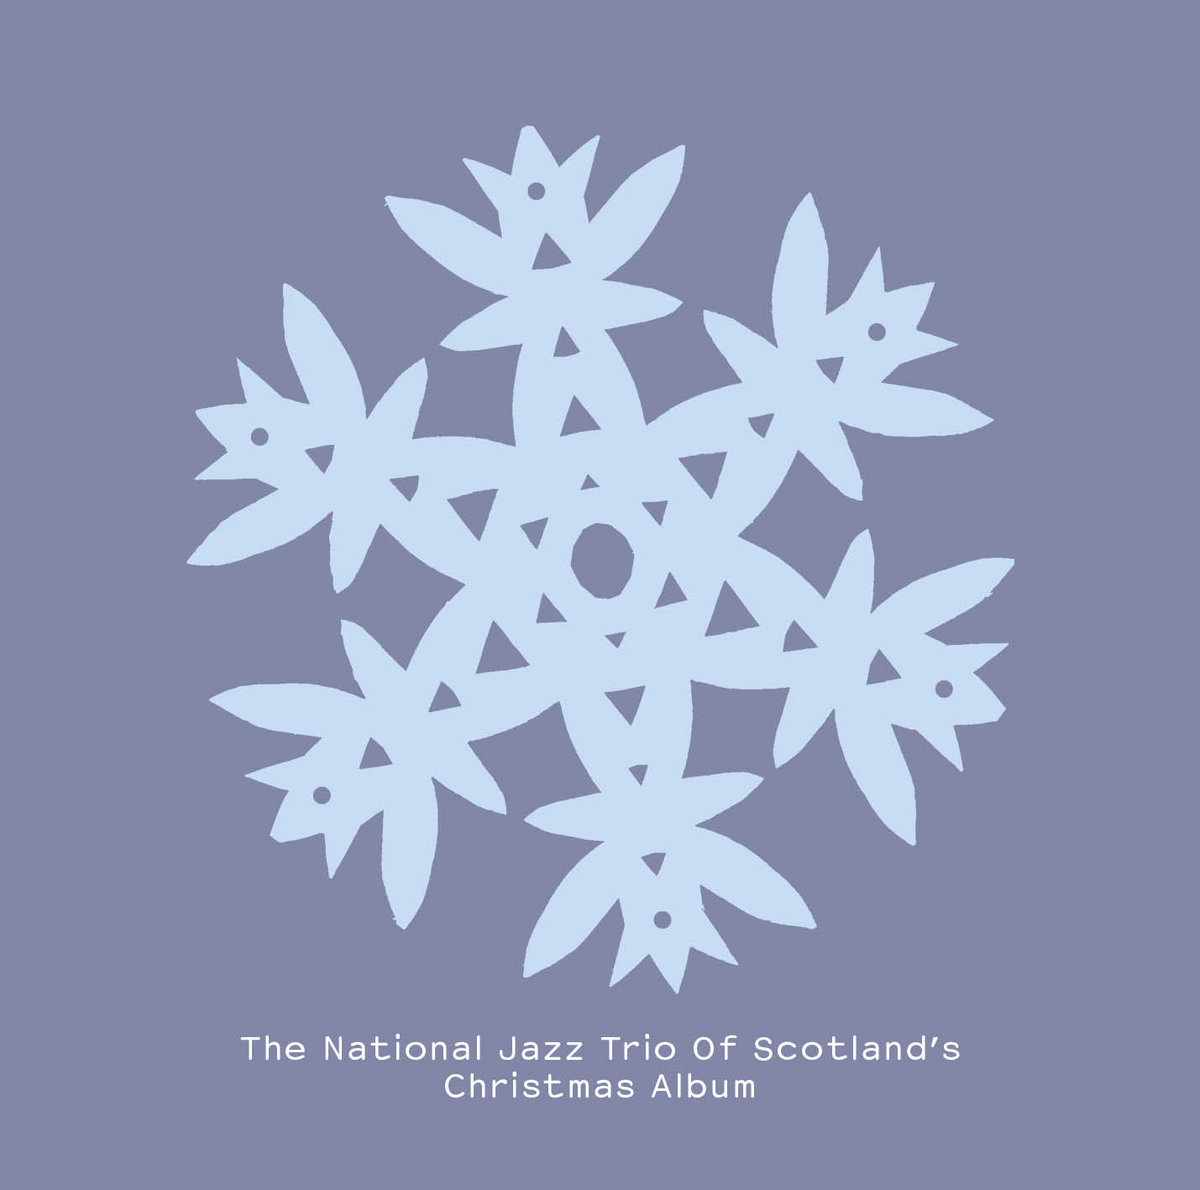 Includes unlimited streaming of The National Jazz Trio Of Scotland's Christmas Album via the free Bandcamp app, plus high-quality download in MP3, ...